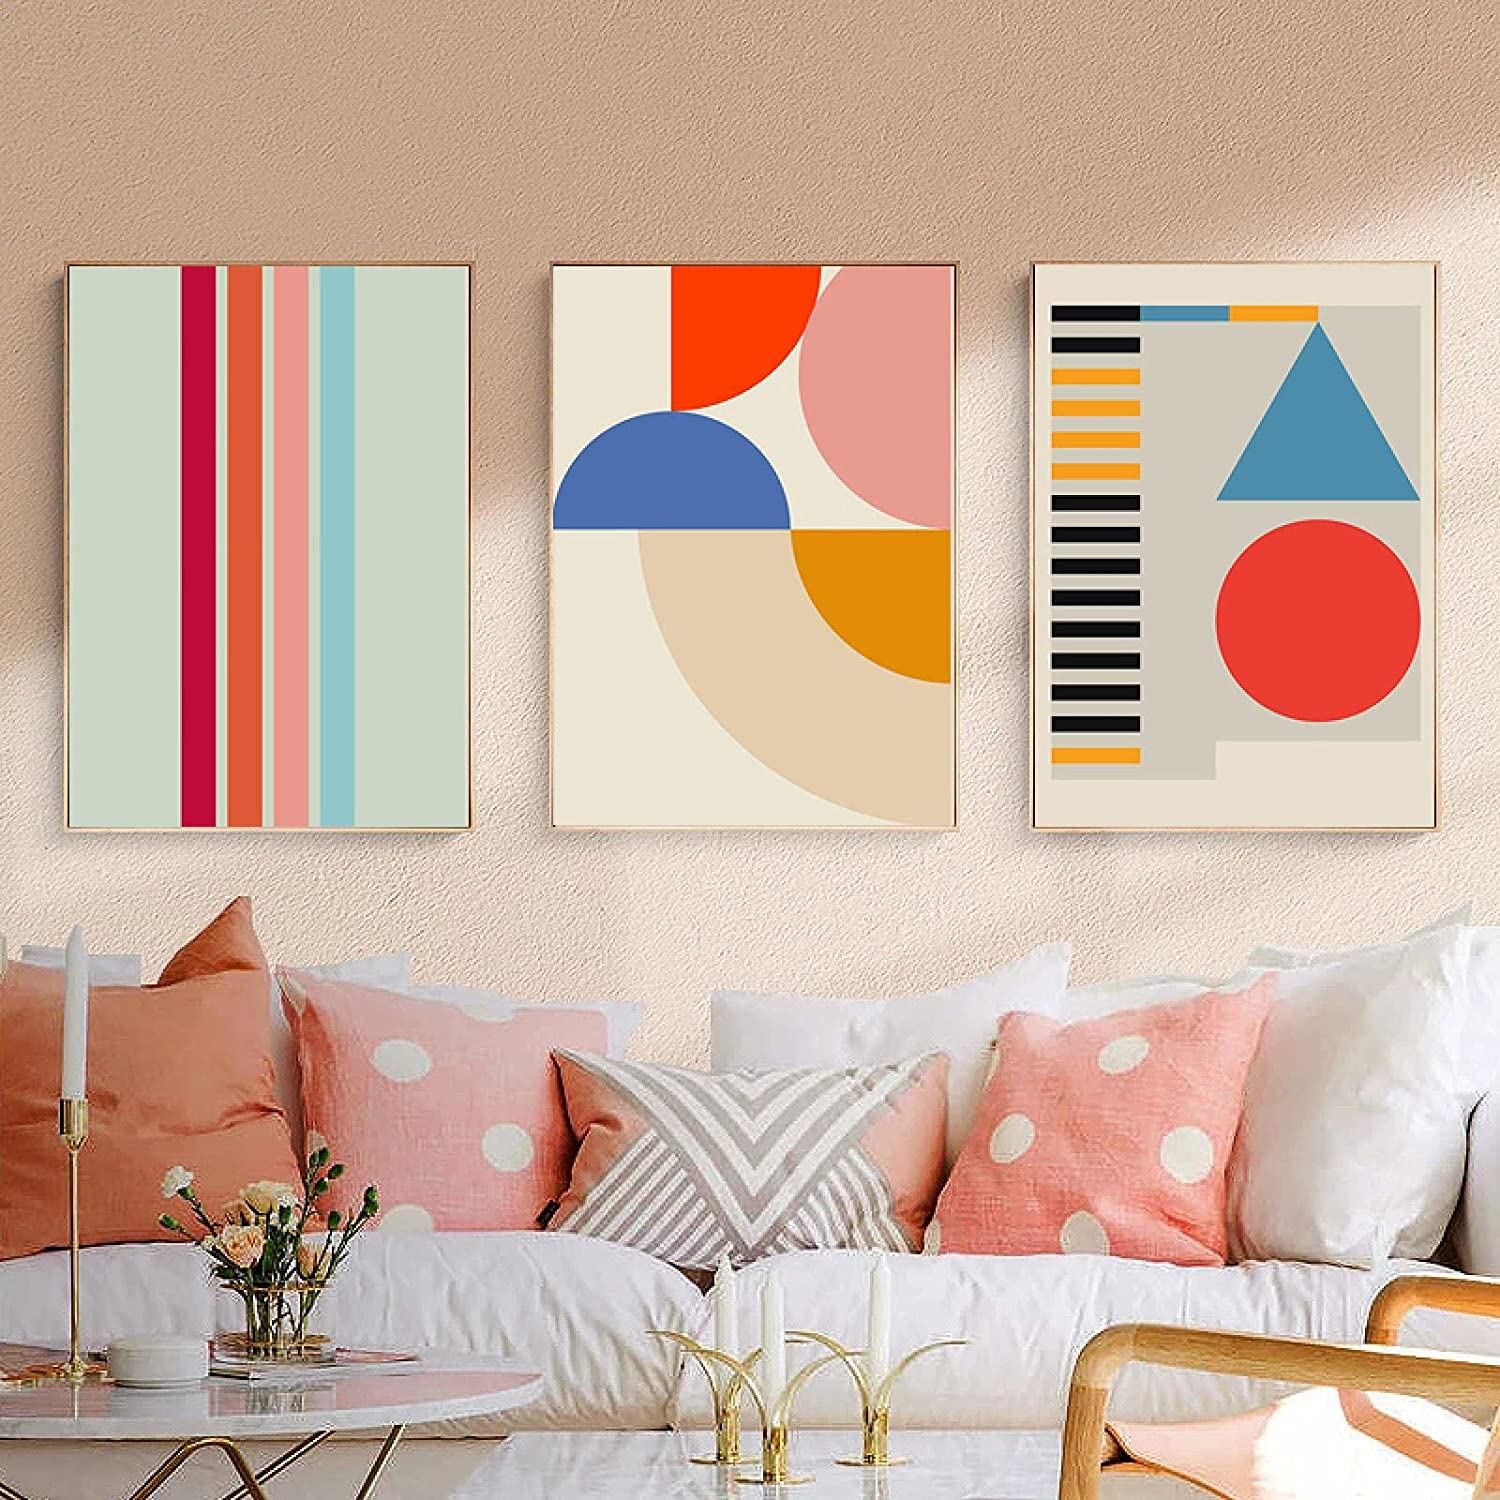 YQLKC Creative Art Pattern Poster Geometric Line Abstract Canvas Quality inspection supreme